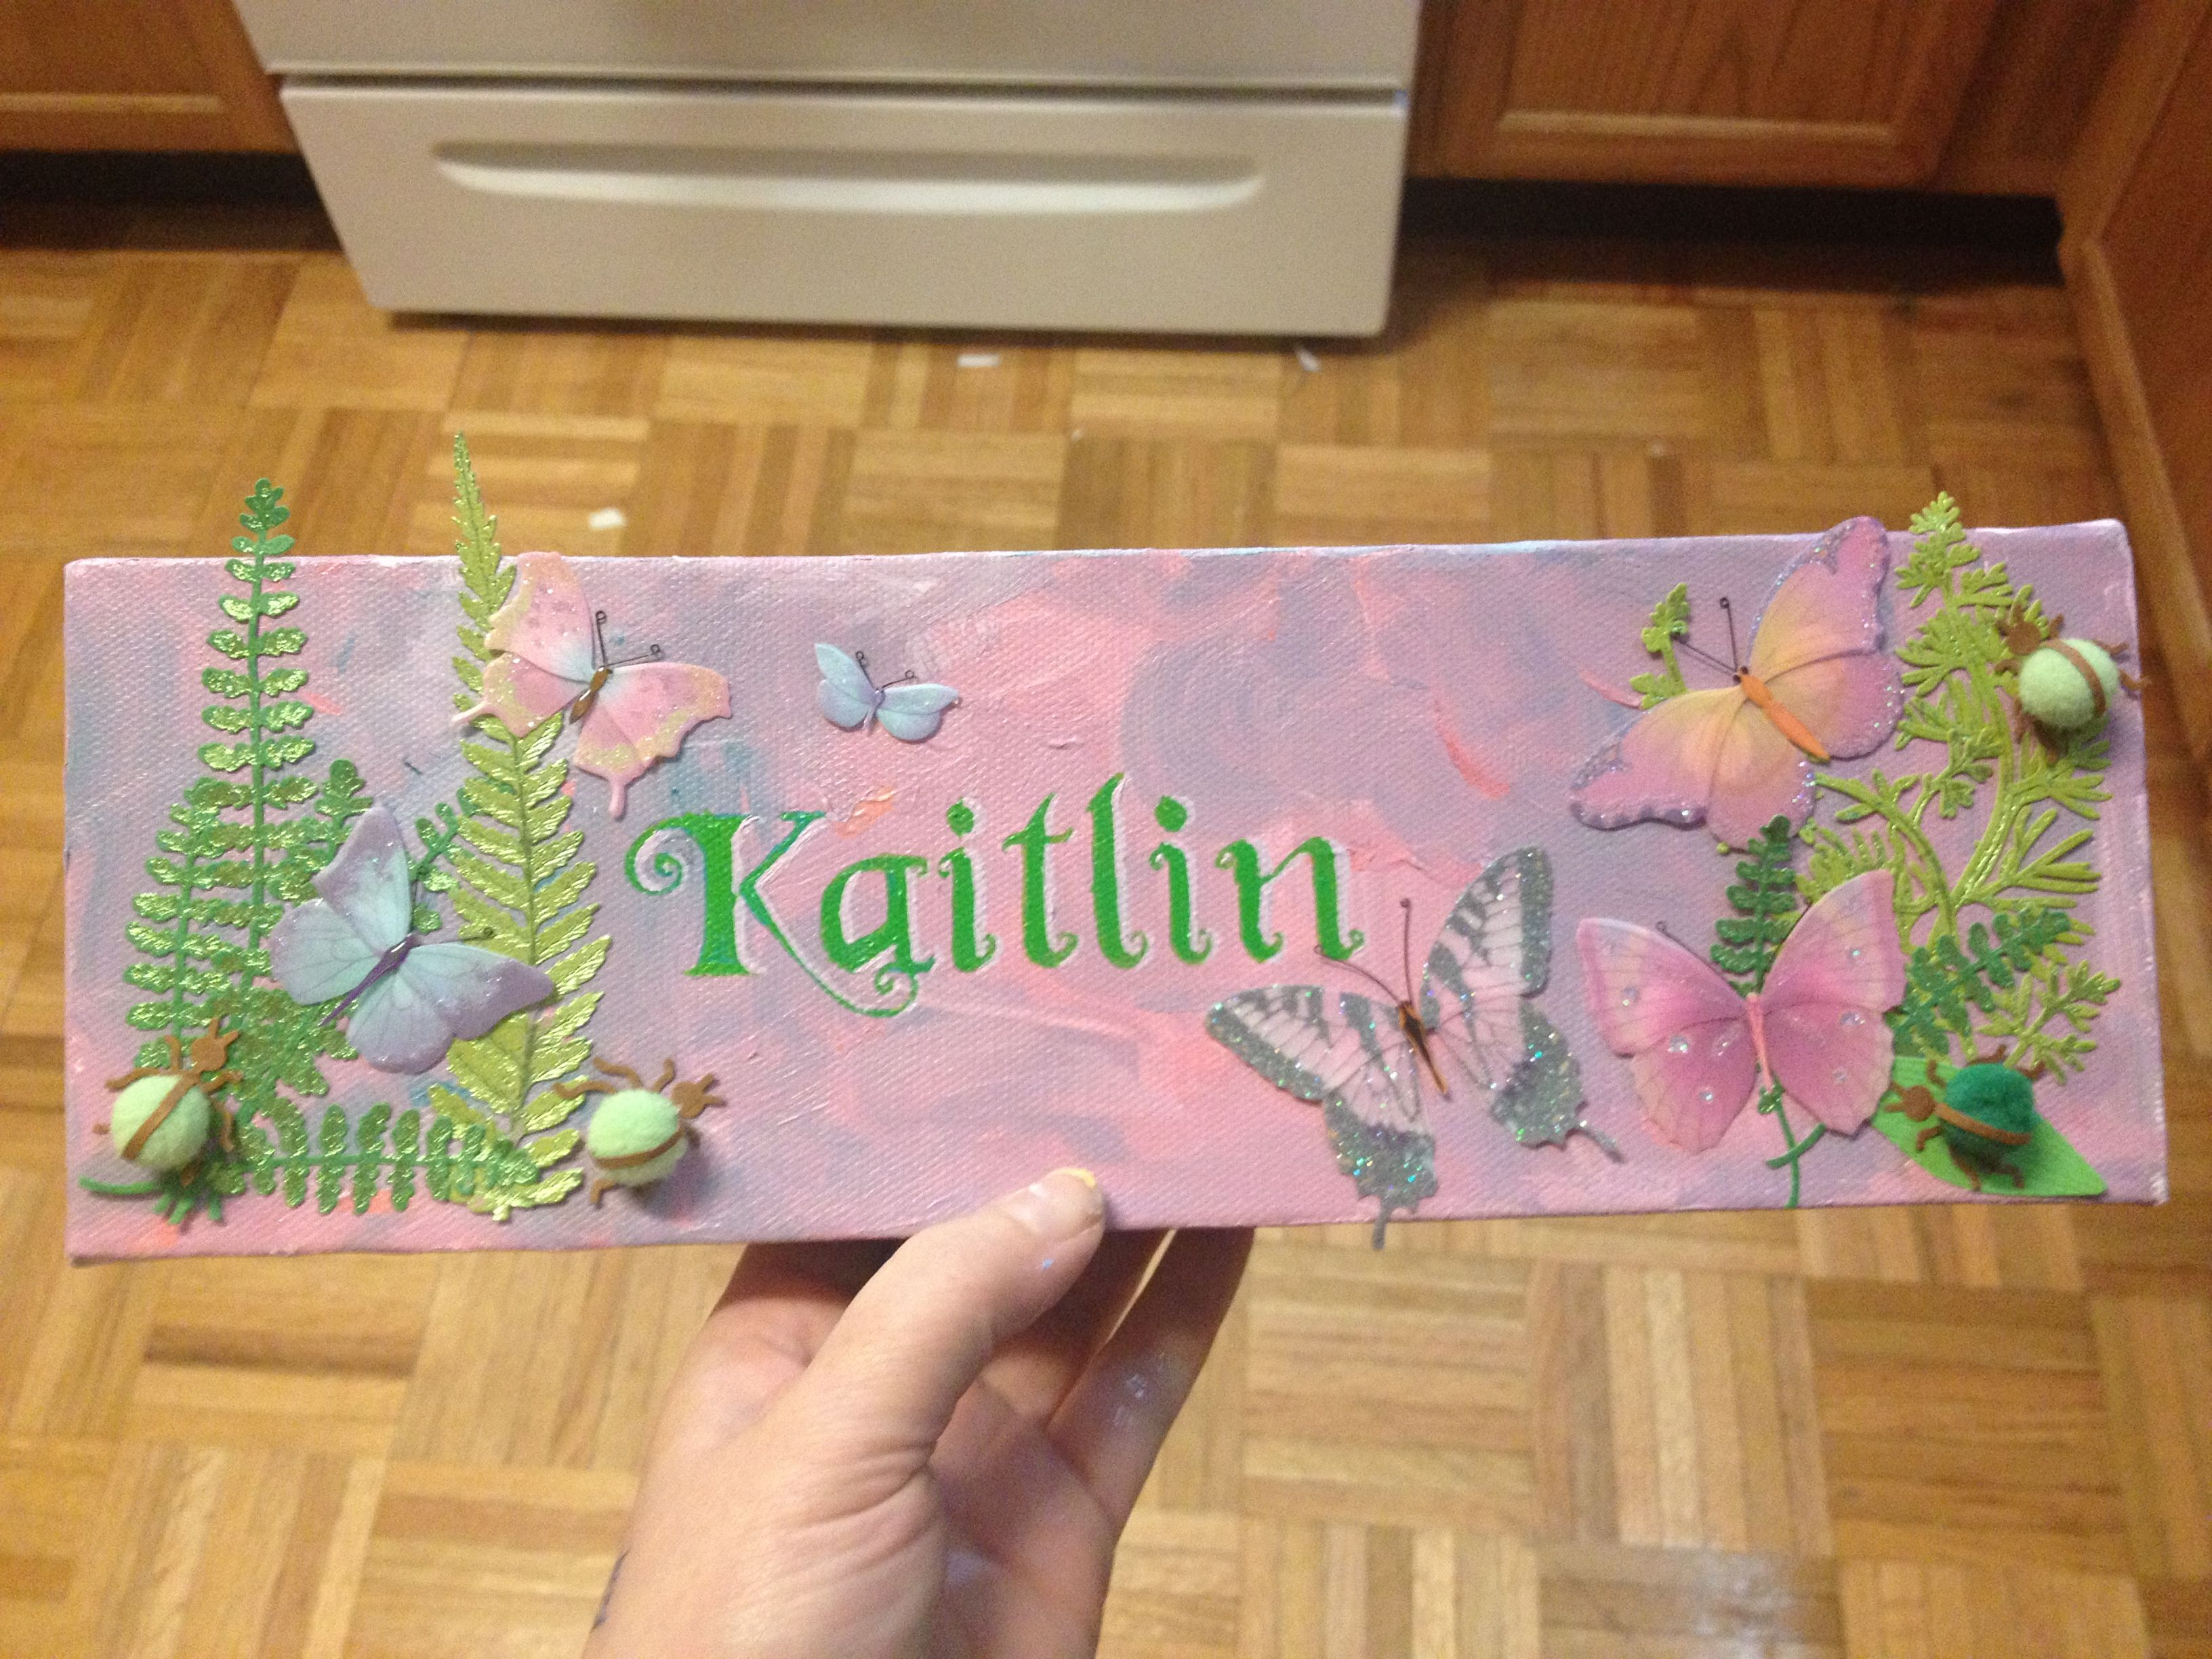 Scrapbook ideas names - Canvas Turned Into Name Plate For Wall Scrapbook Paper Stickers Font